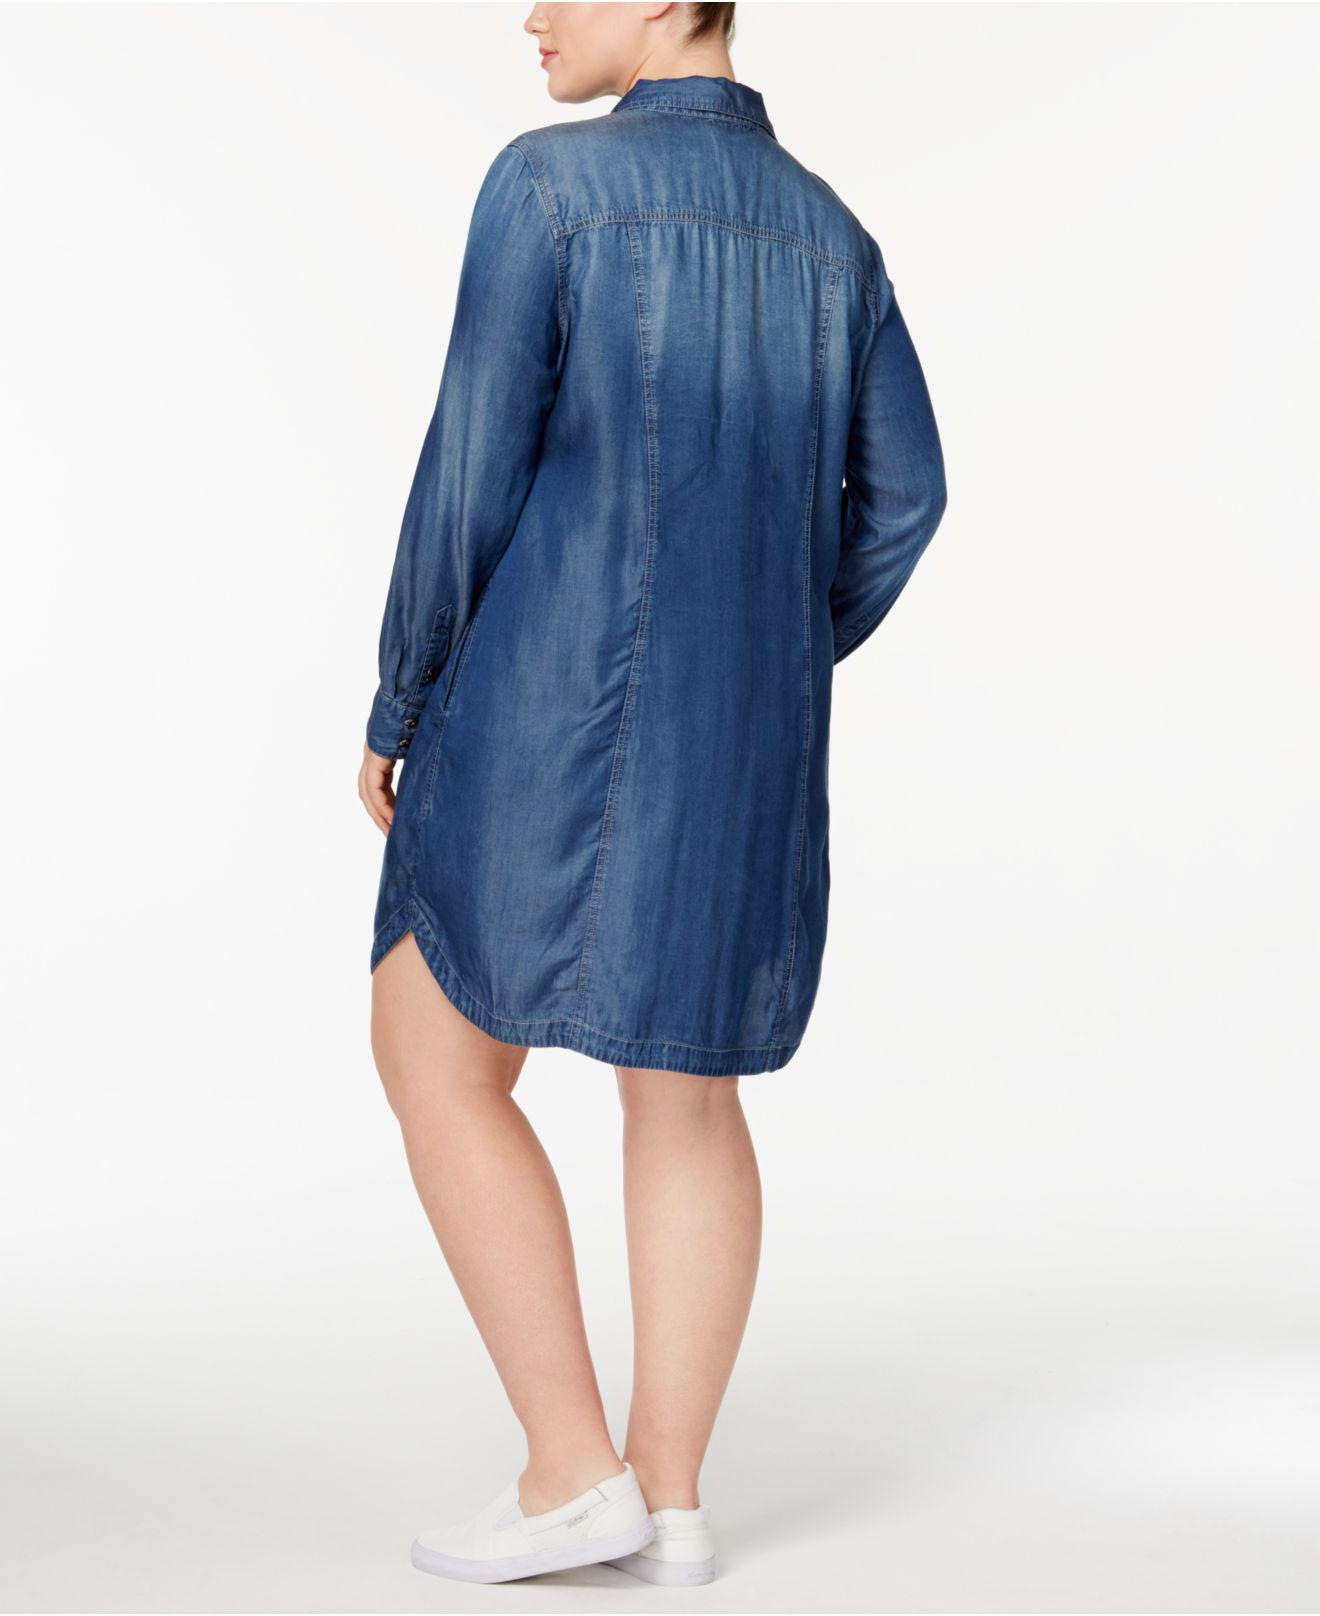 4a726a8f715 Lyst - Jessica Simpson Trendy Plus Size Cotton Denim Shirtdress in Blue